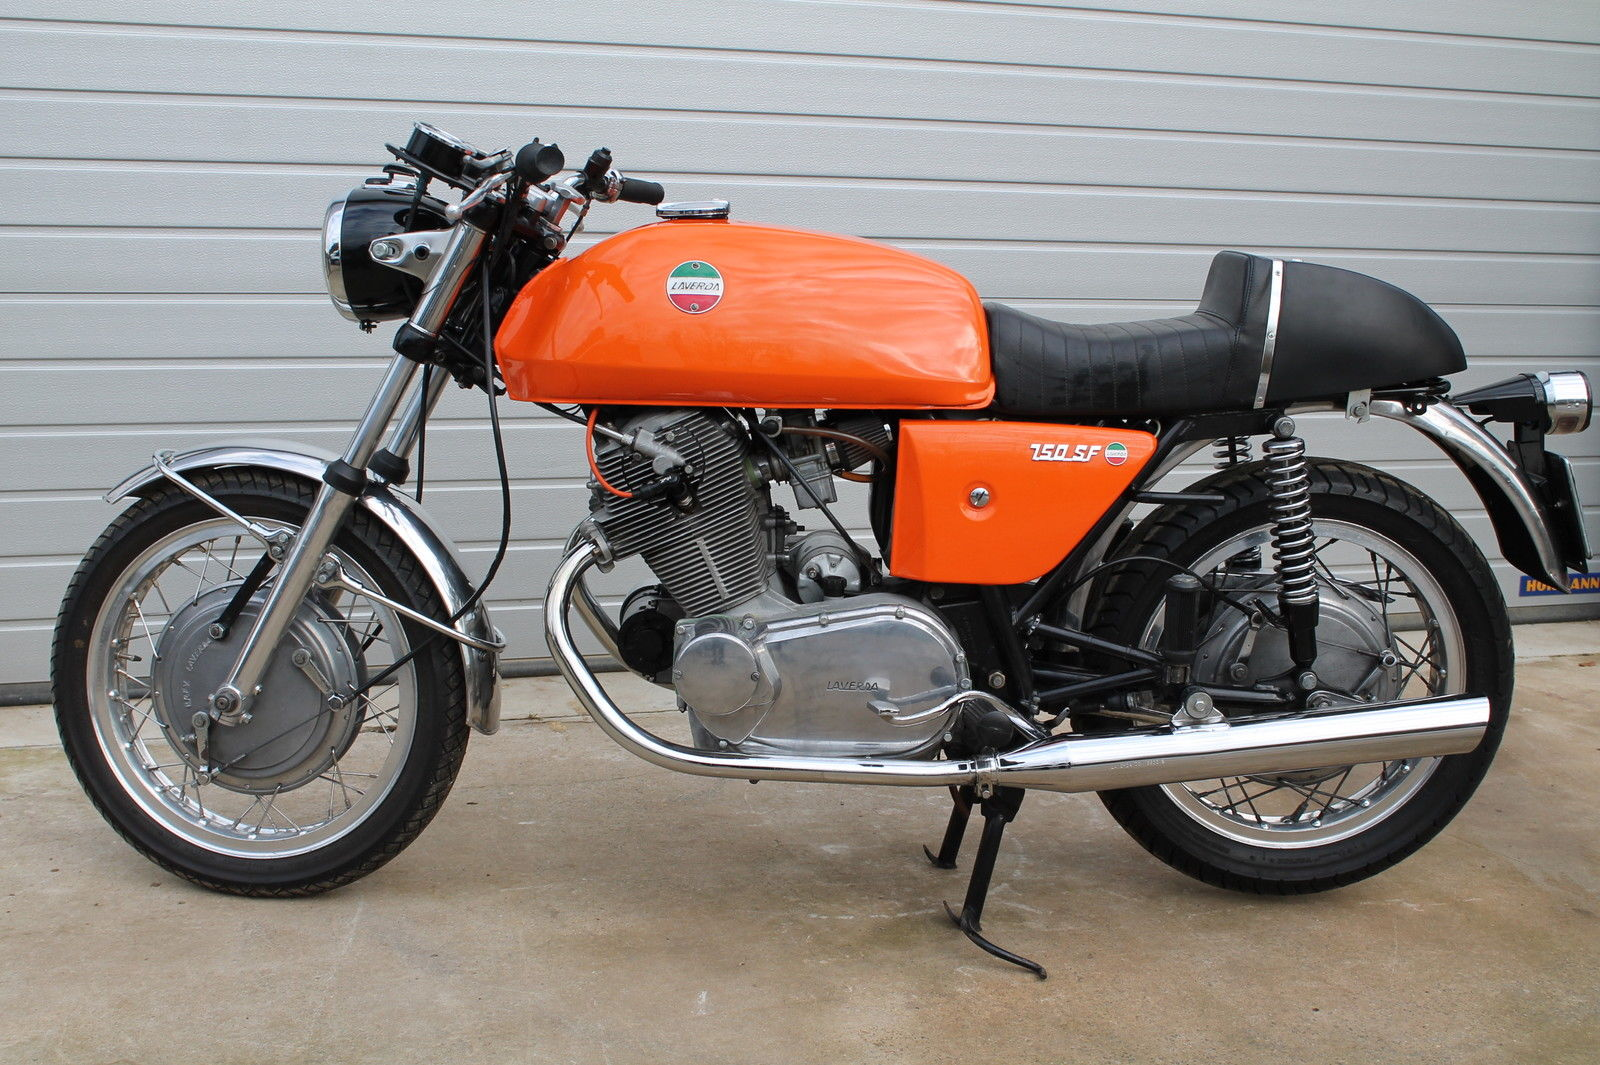 Laverda 750sf photo - 1